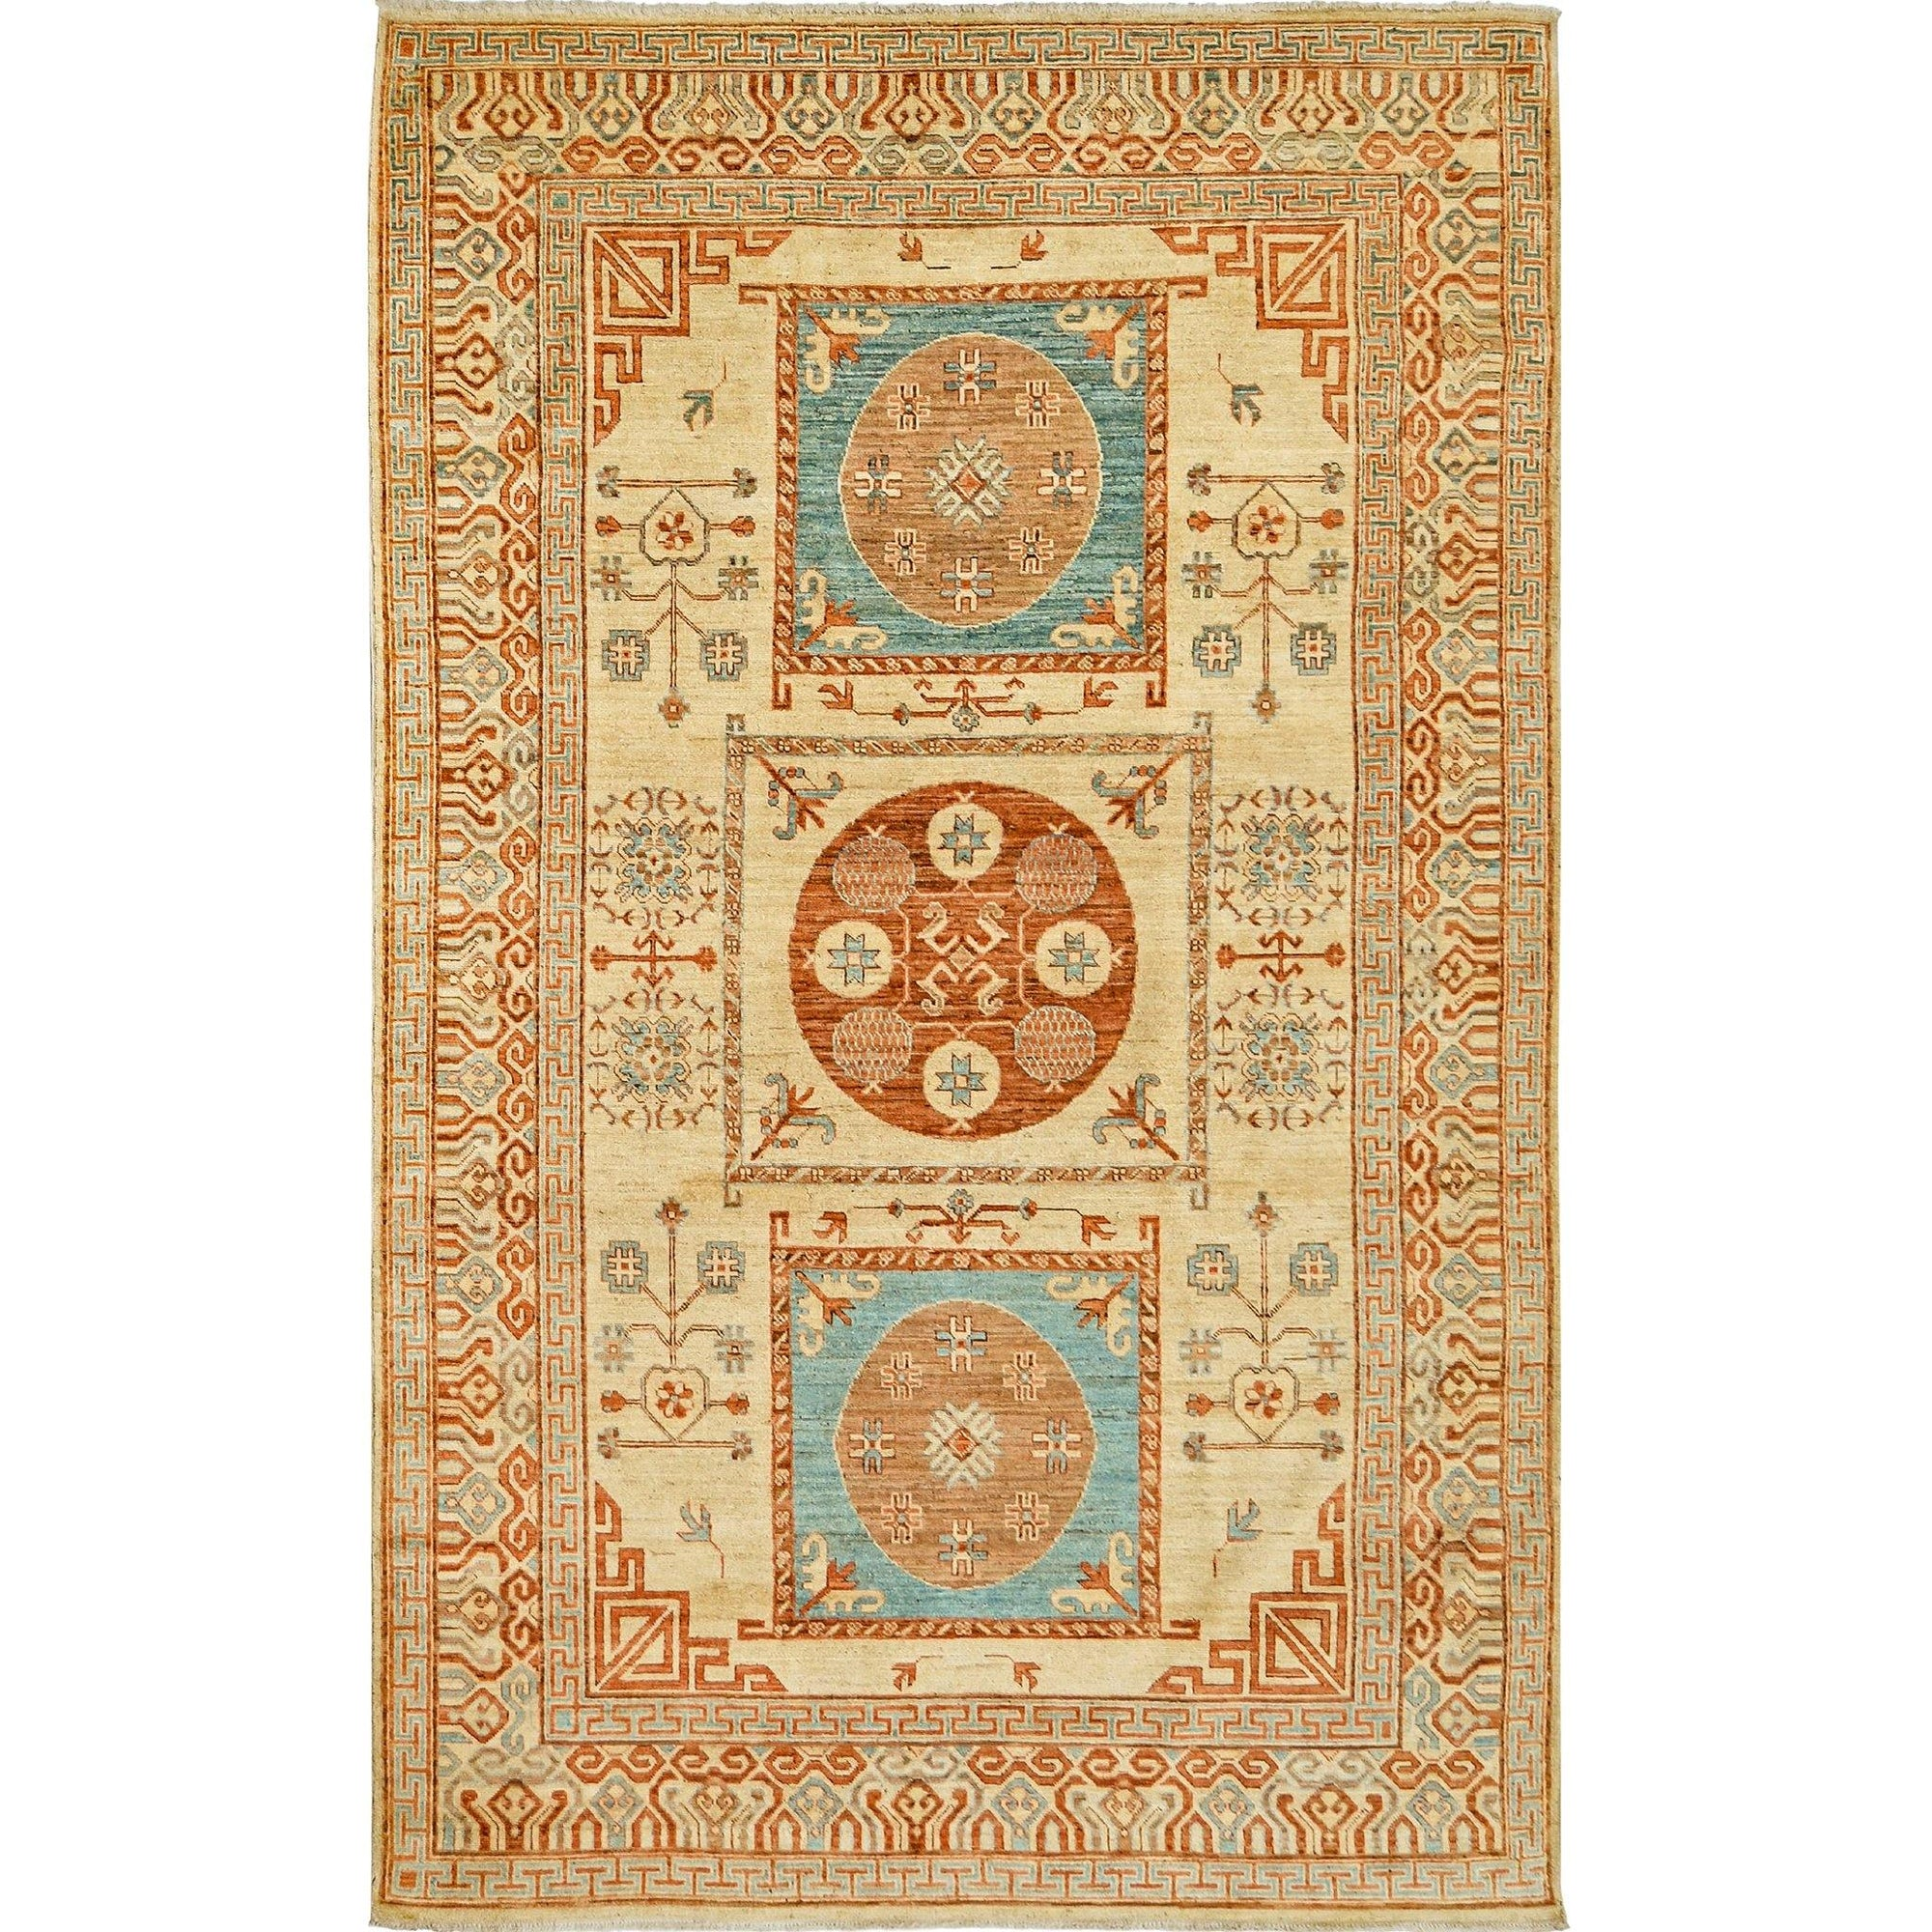 Fine Hand-knotted Wool Rug 200cm x 308cm Persian-Rug | House-of-Haghi | NewMarket | Auckland | NZ | Handmade Persian Rugs | Hand Knotted Persian Rugs